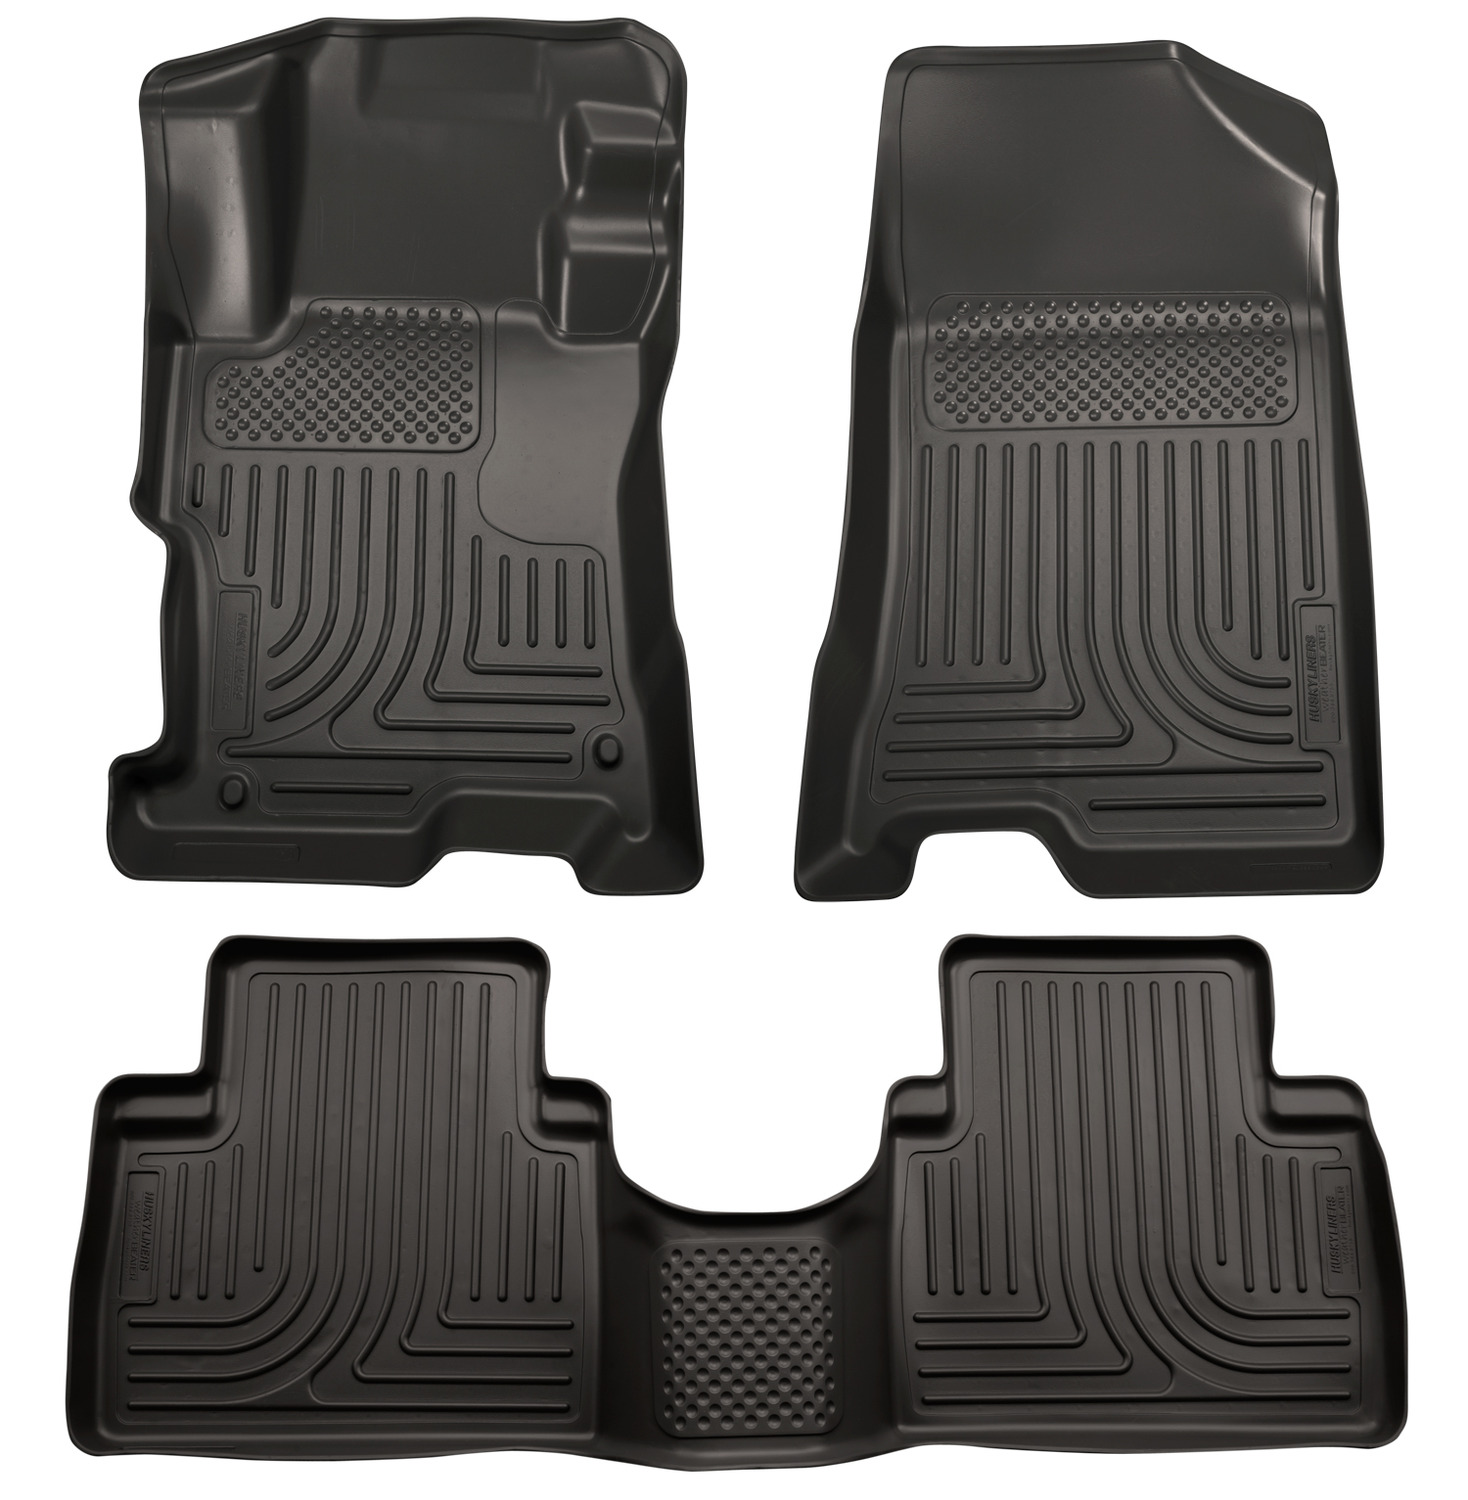 Rubber floor mats kia sorento - 2015 Kia Sorento Weatherbeater Floor Liner 1 2row Footwell Coverage Black